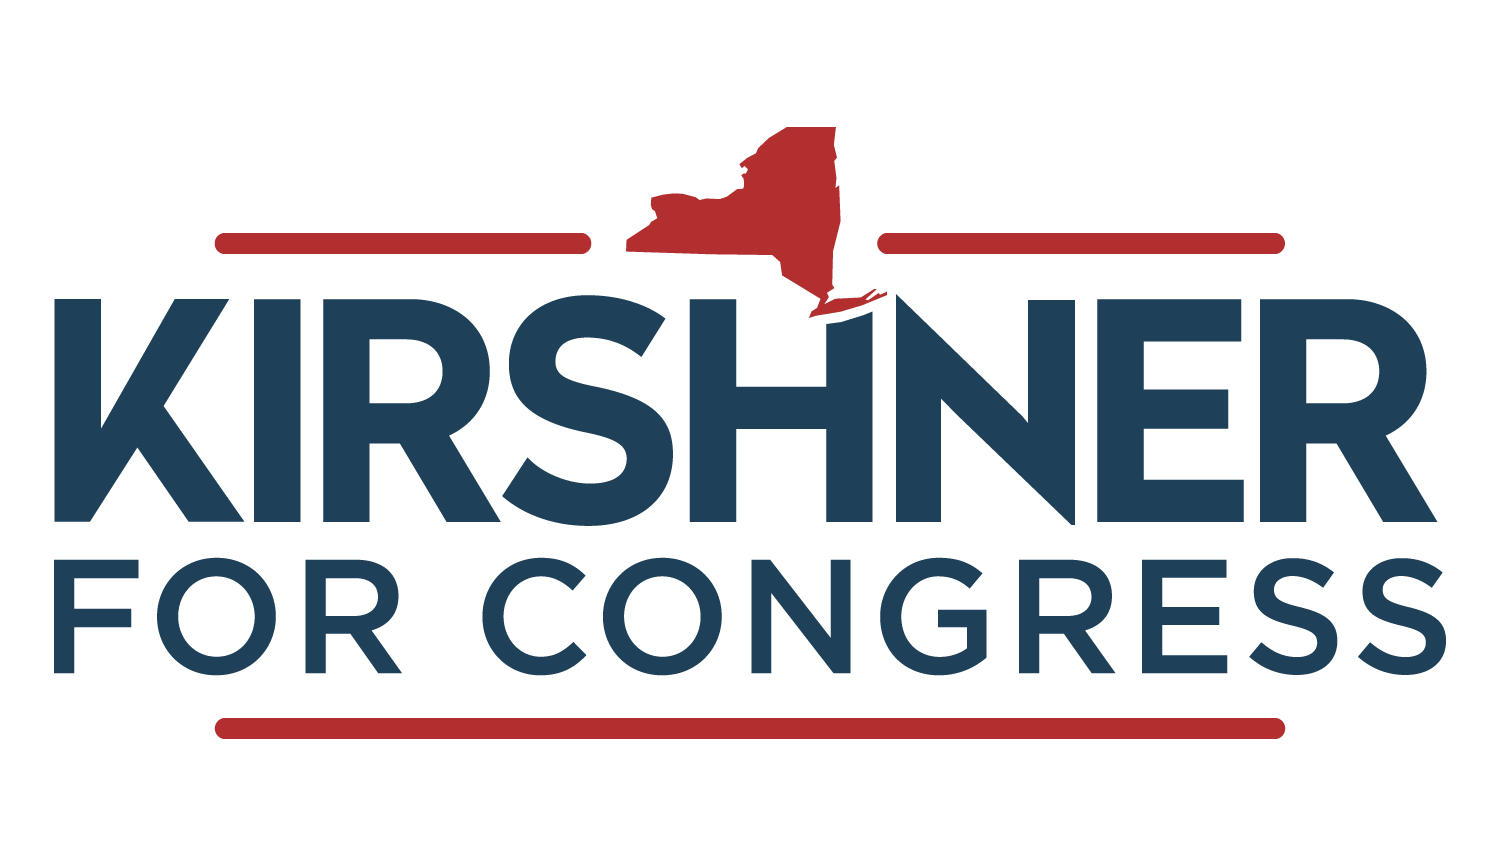 Kirshner for Congress